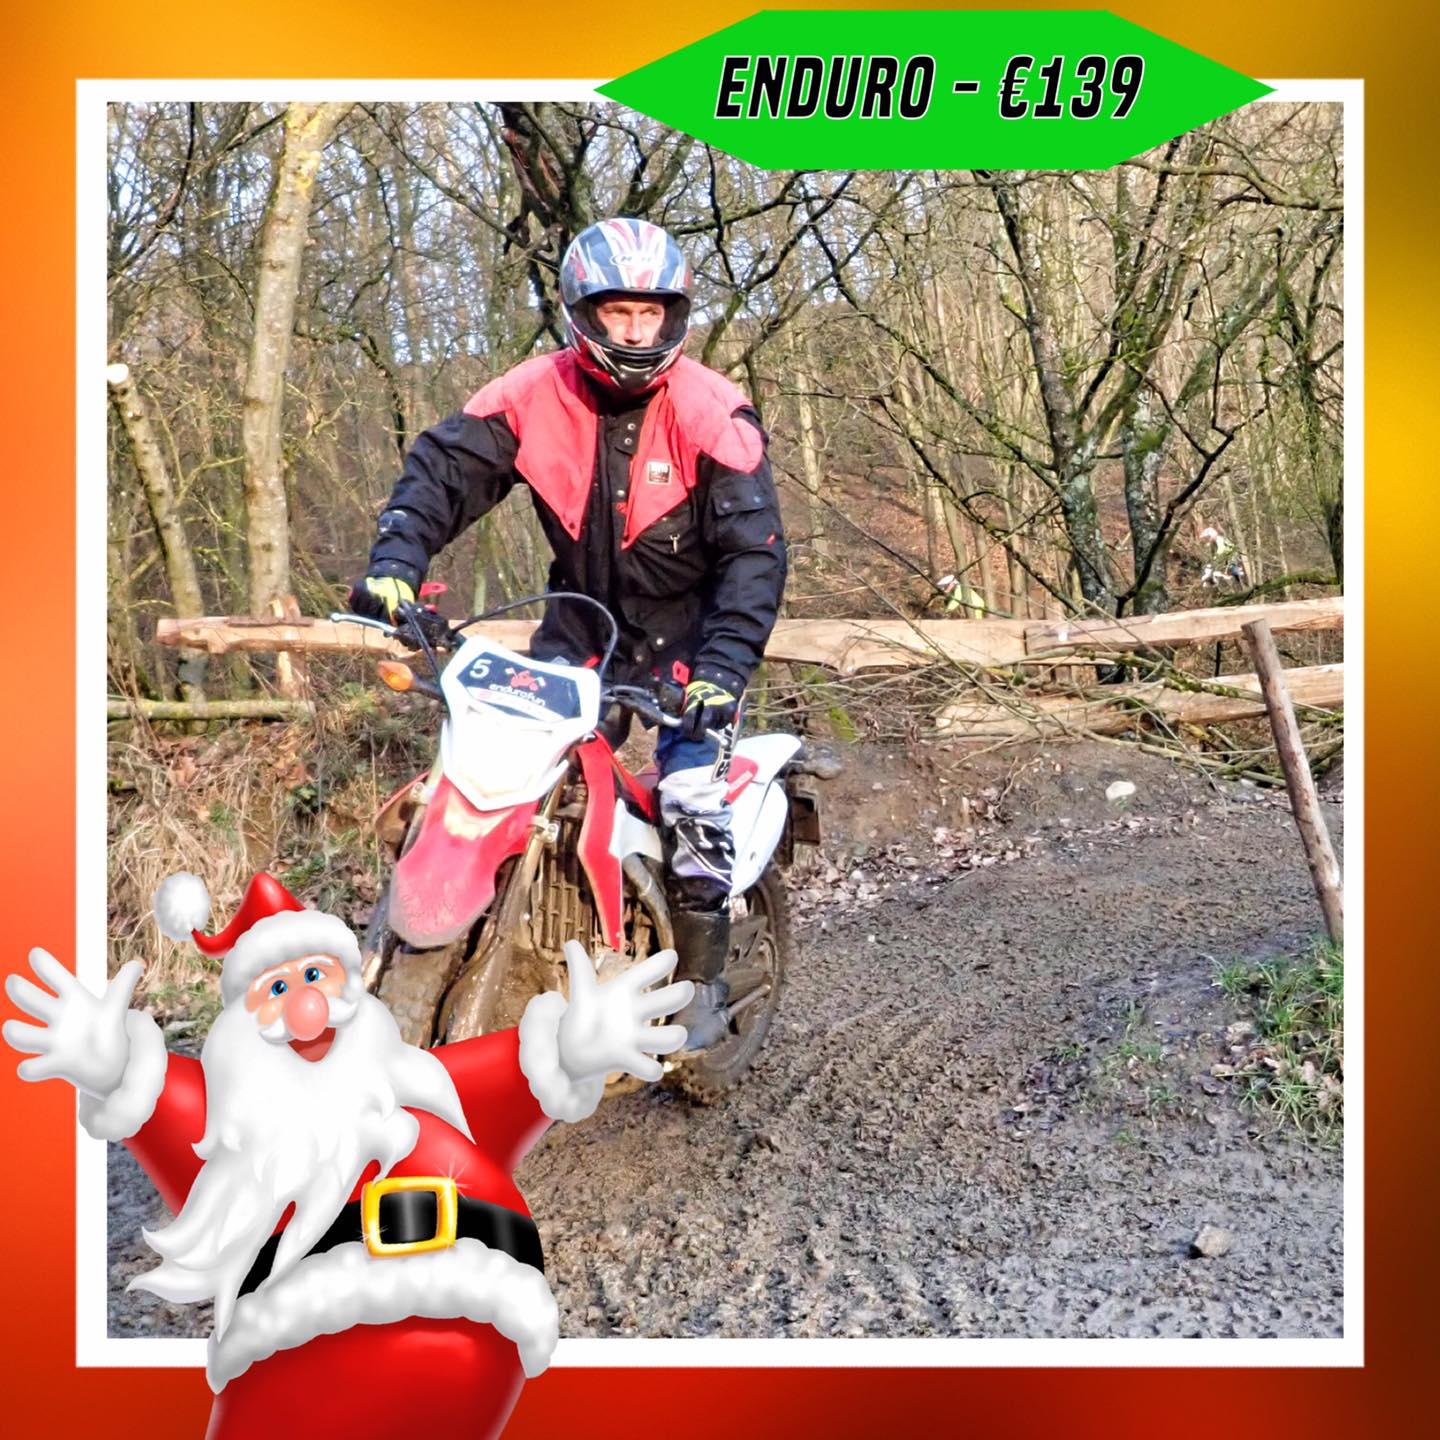 Kerst-initiaties Bilstain Endurofun 16